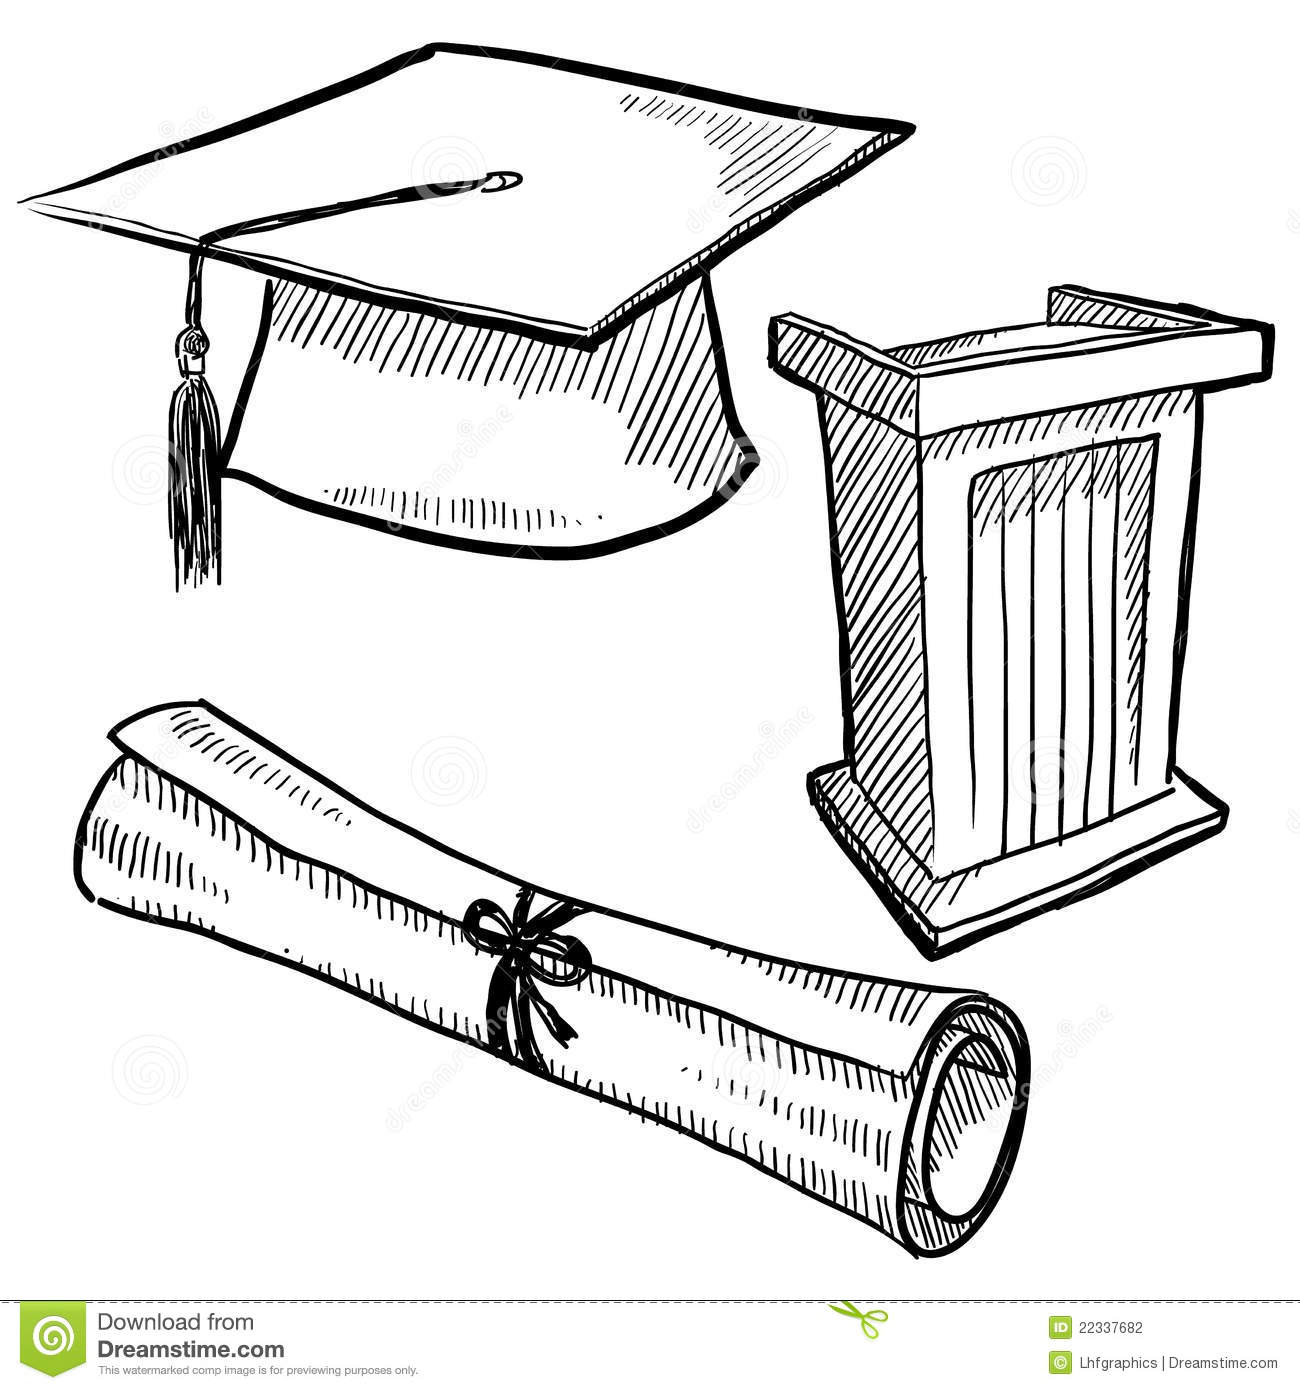 Graduation objects sketch stock vector. Illustration of